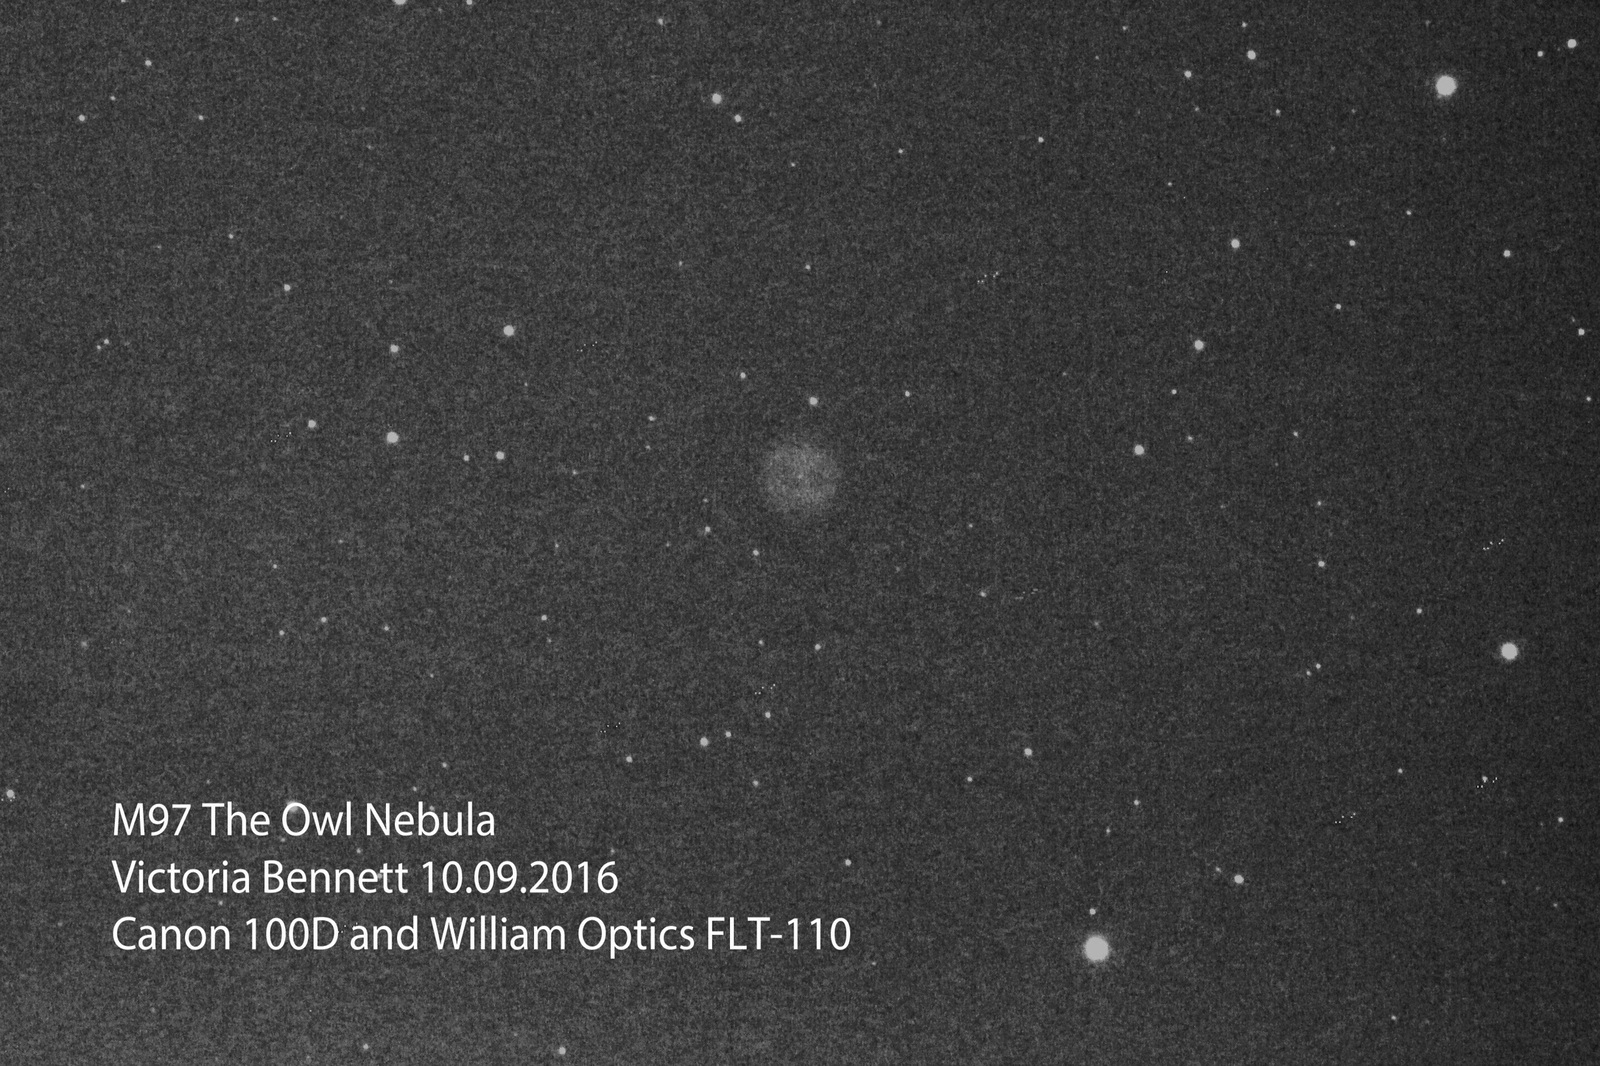 M97 The Owl Nebula 10.09.2016